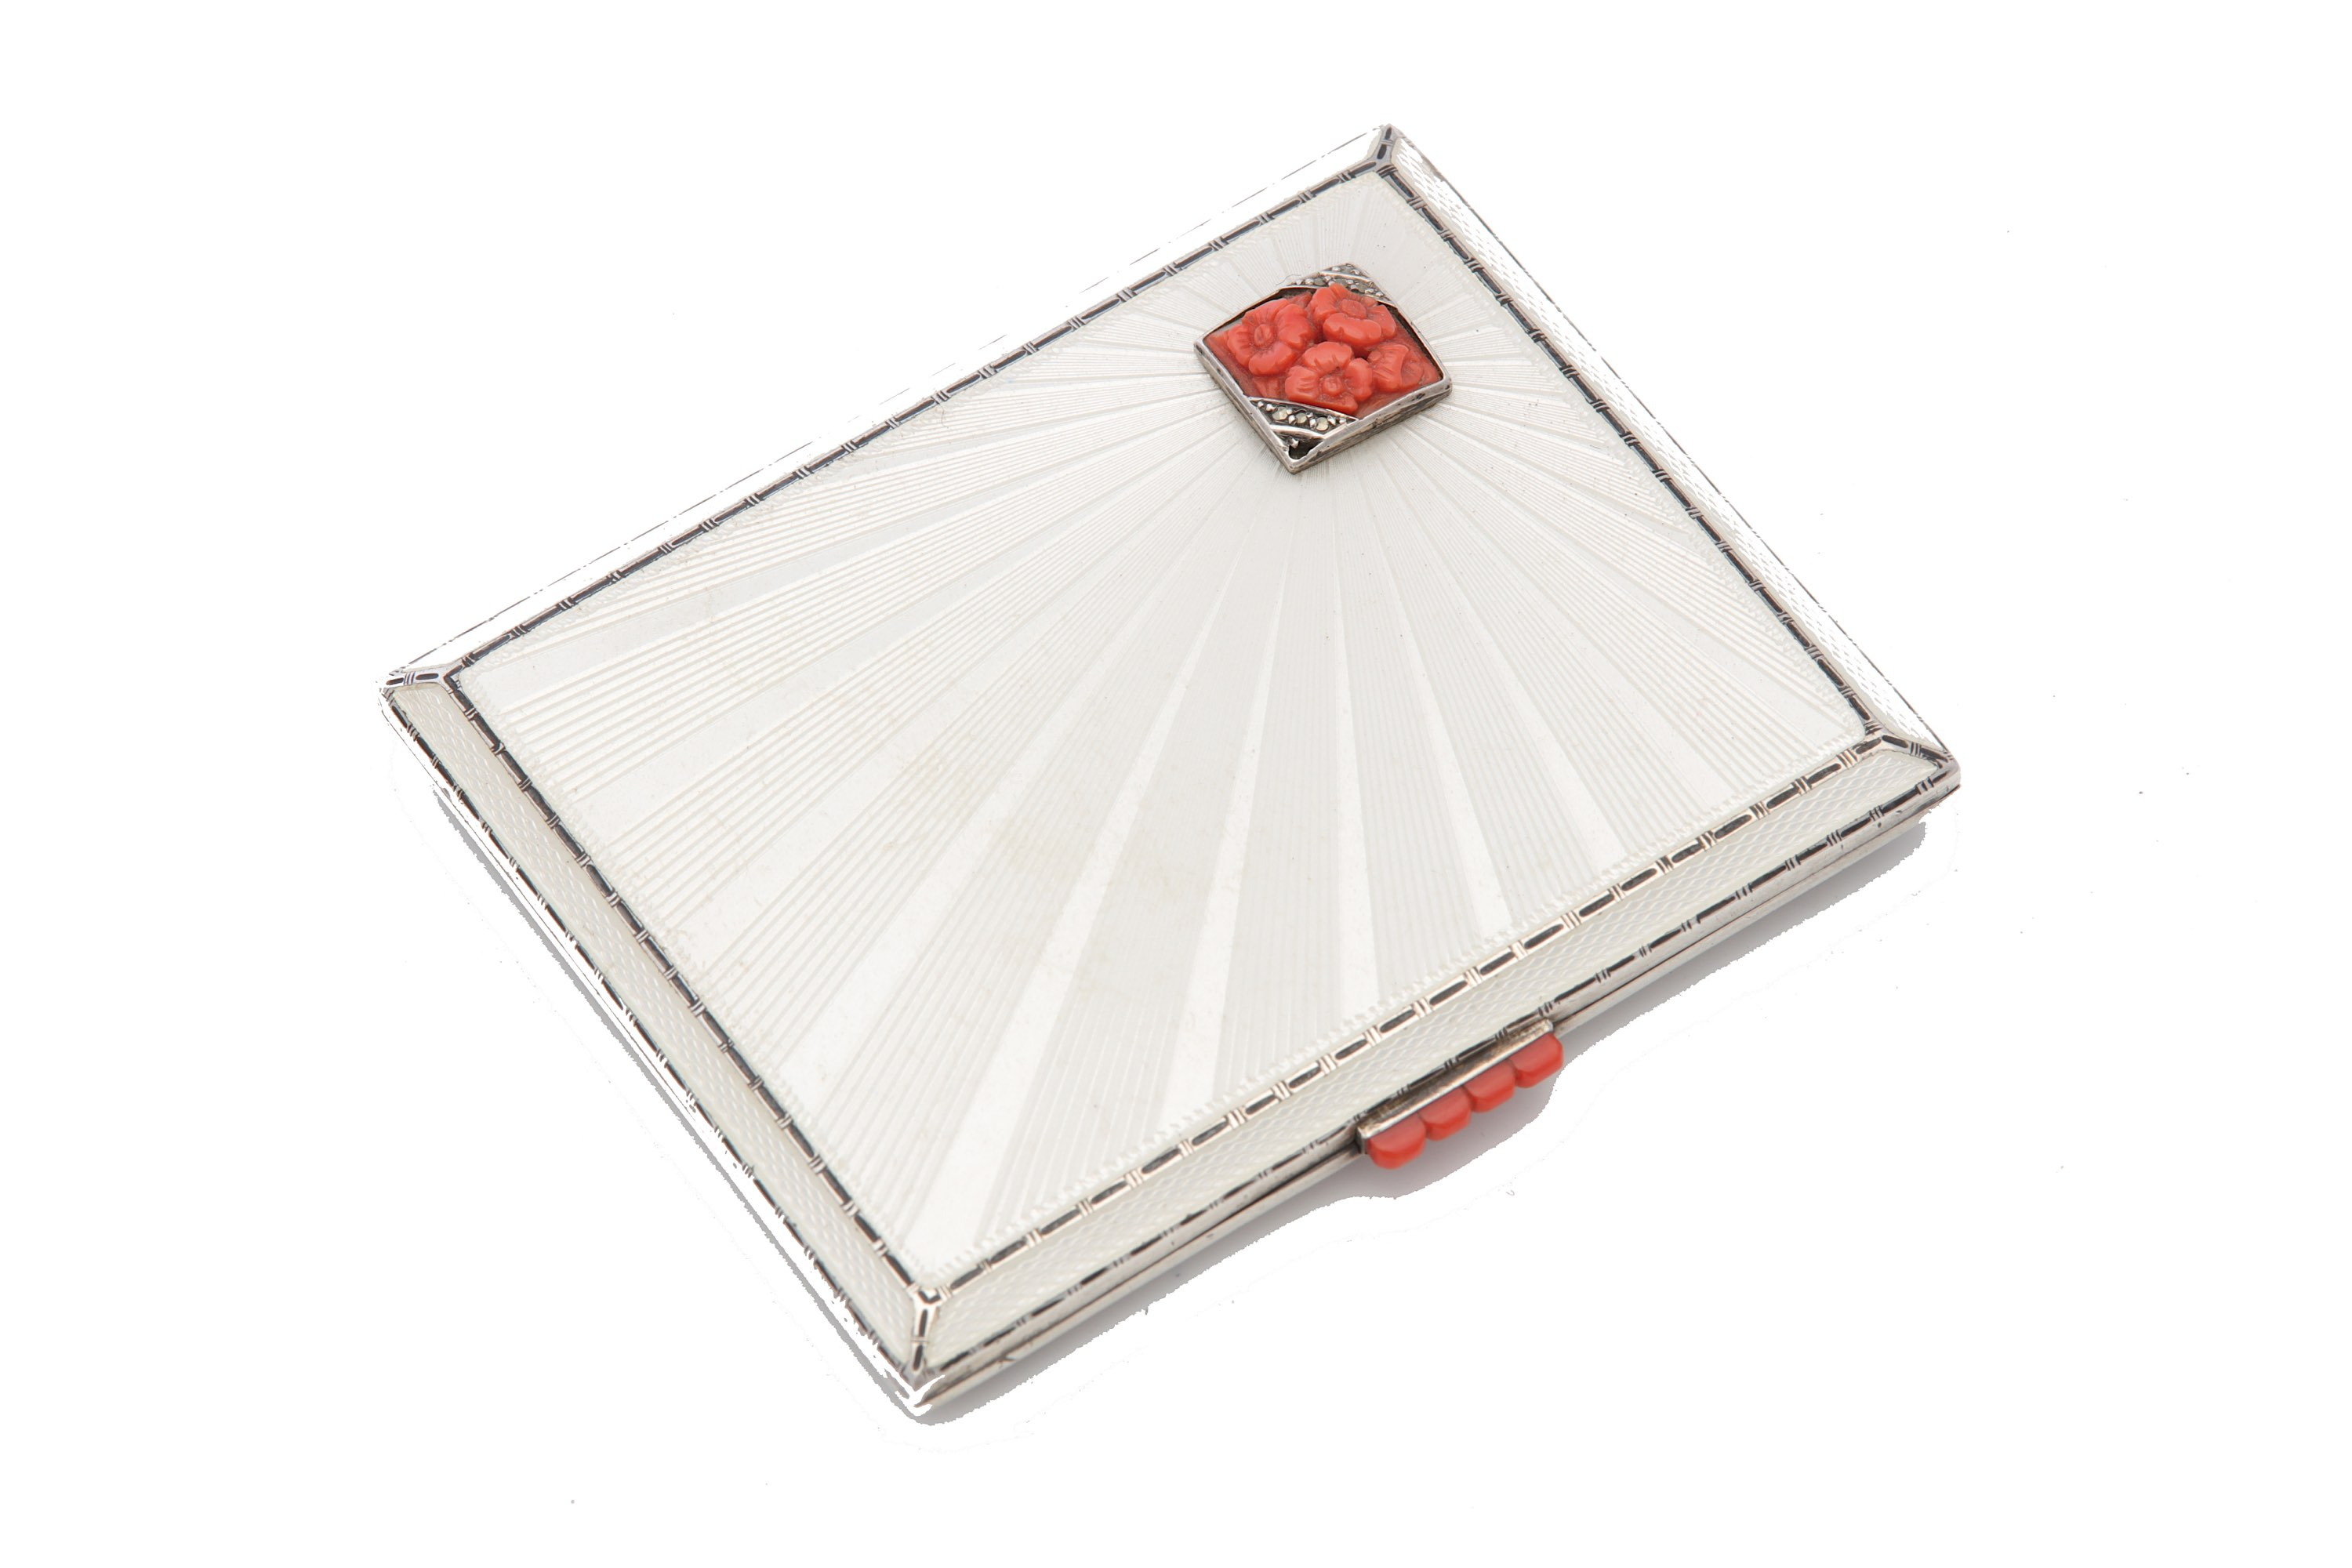 Lot 1 - A George V antique sterling silver guilloche enamel and coral cigarette case, Birmingham 1935 by Adi